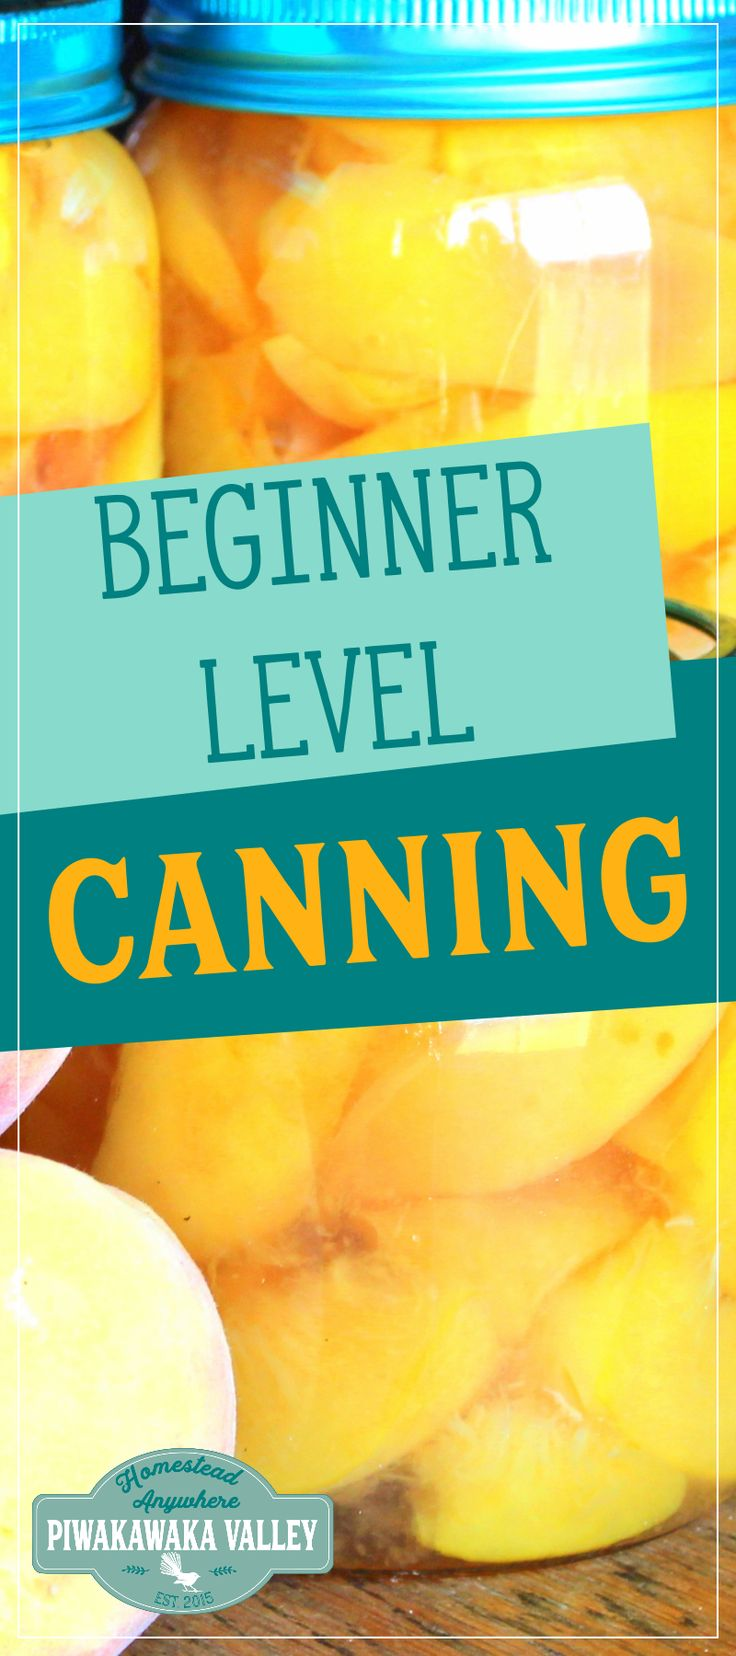 Beginner canning help for stone fruit (peaches).  Once you learn this you will be equipped to apply what you learn to other fruits as well.#affiliatelink #fruitgarden